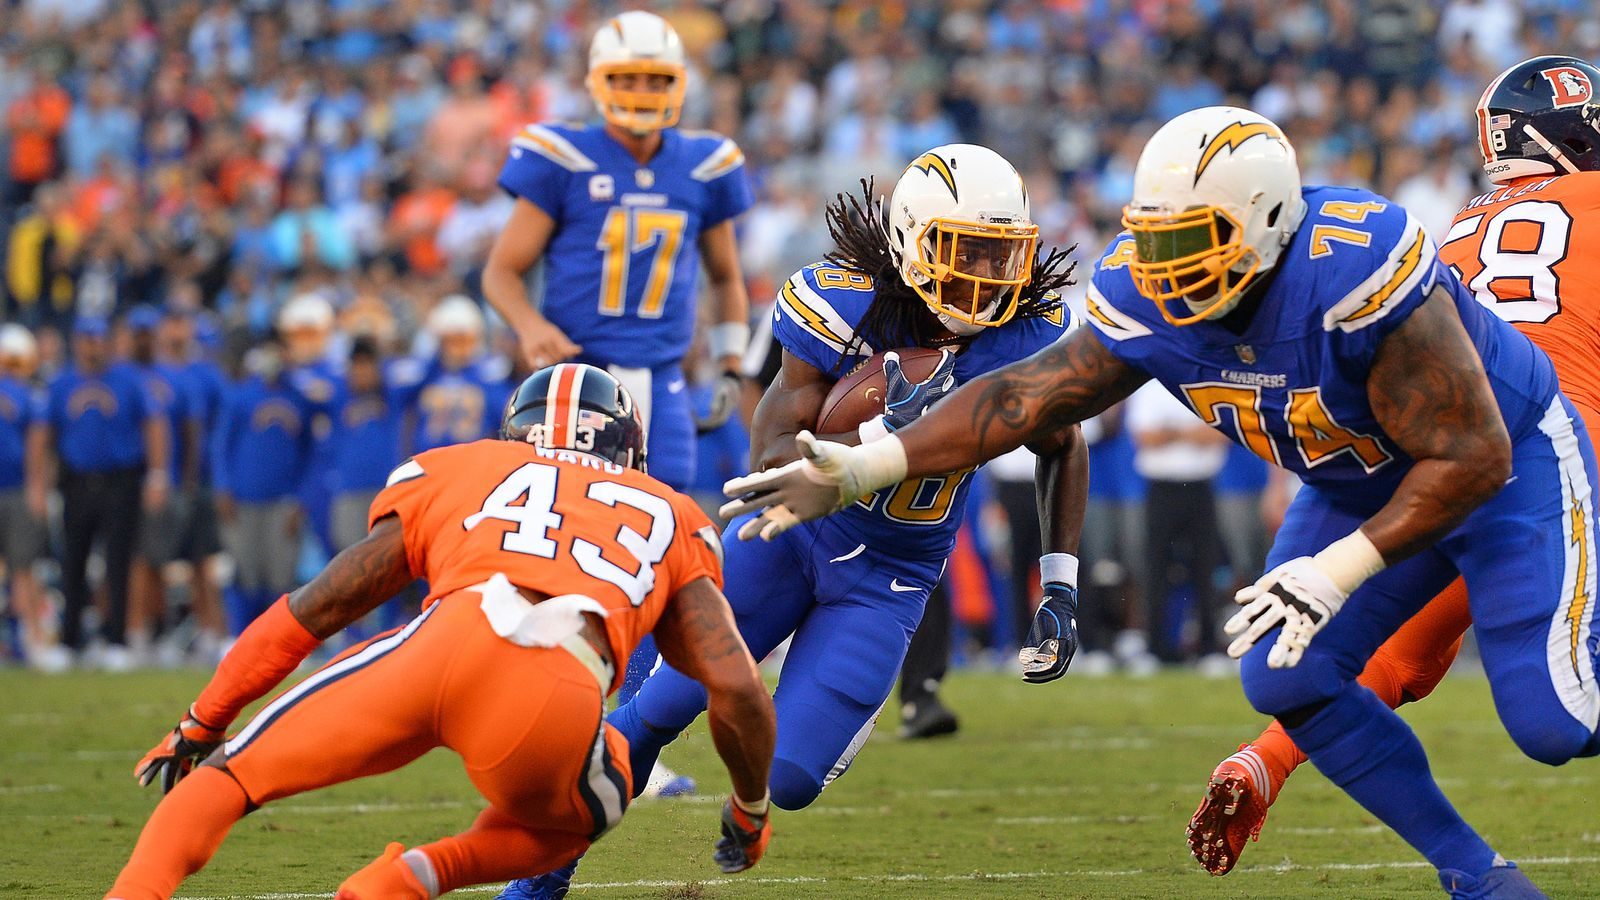 Chargers Broncos Final Score San Diego Chargers Defeat